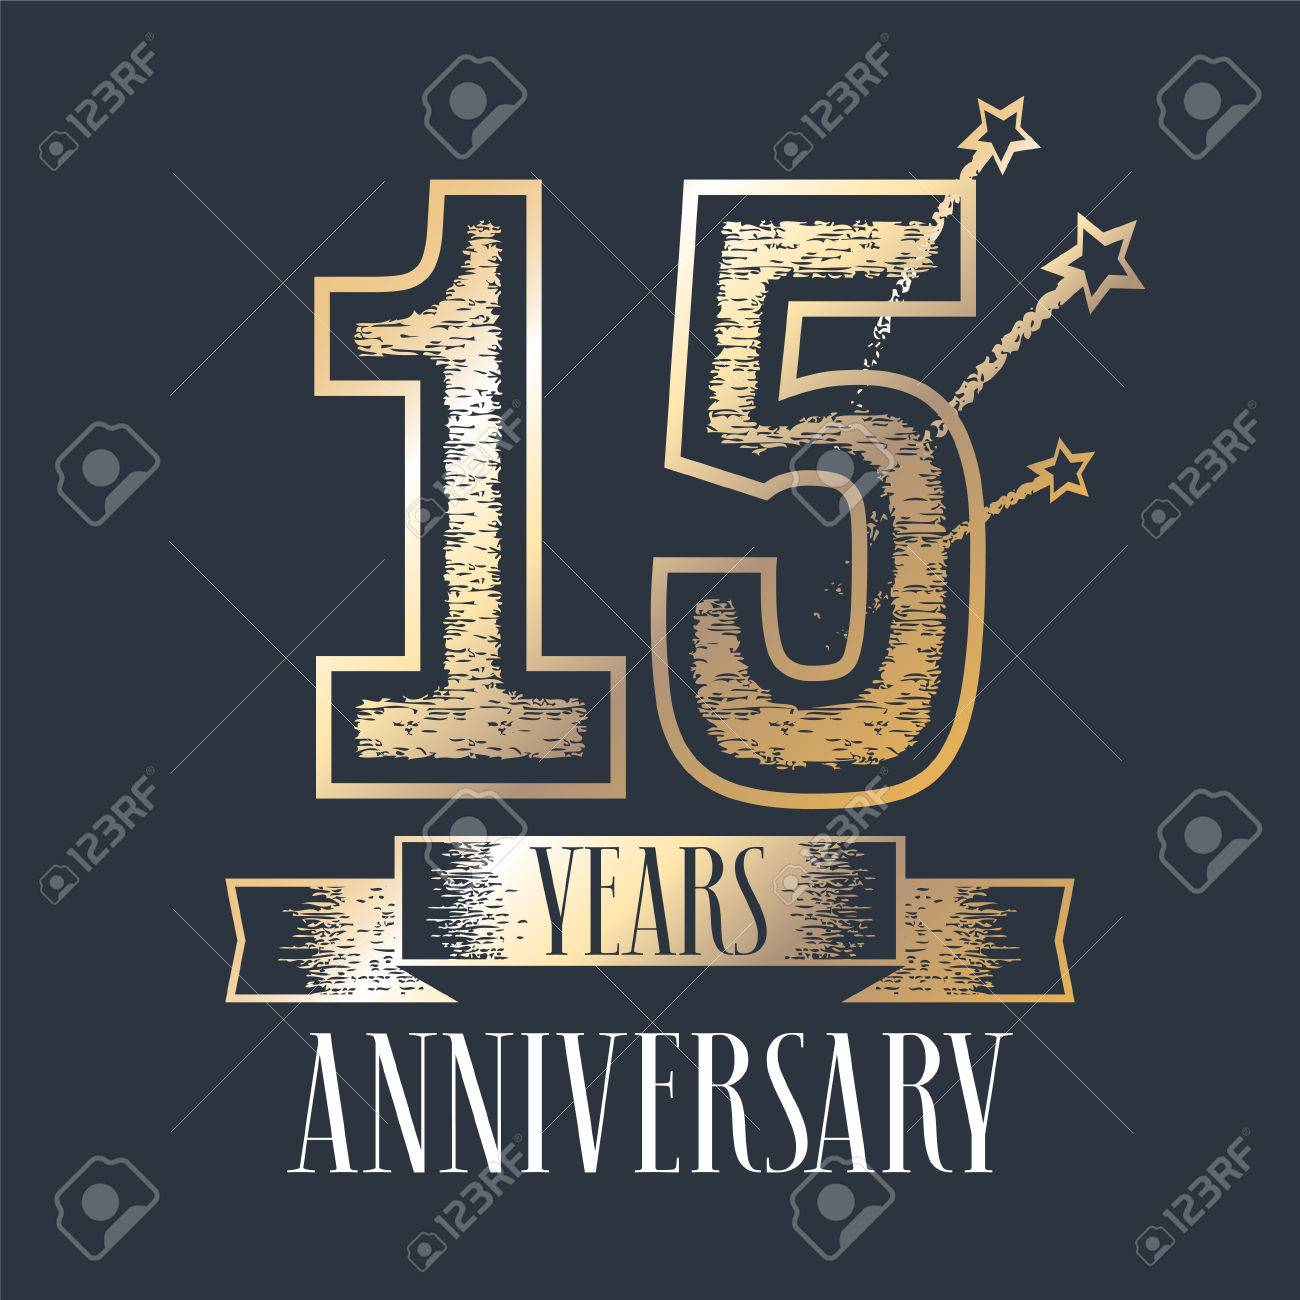 15 Years Anniversary Vector Icon Logo Graphic Design Element